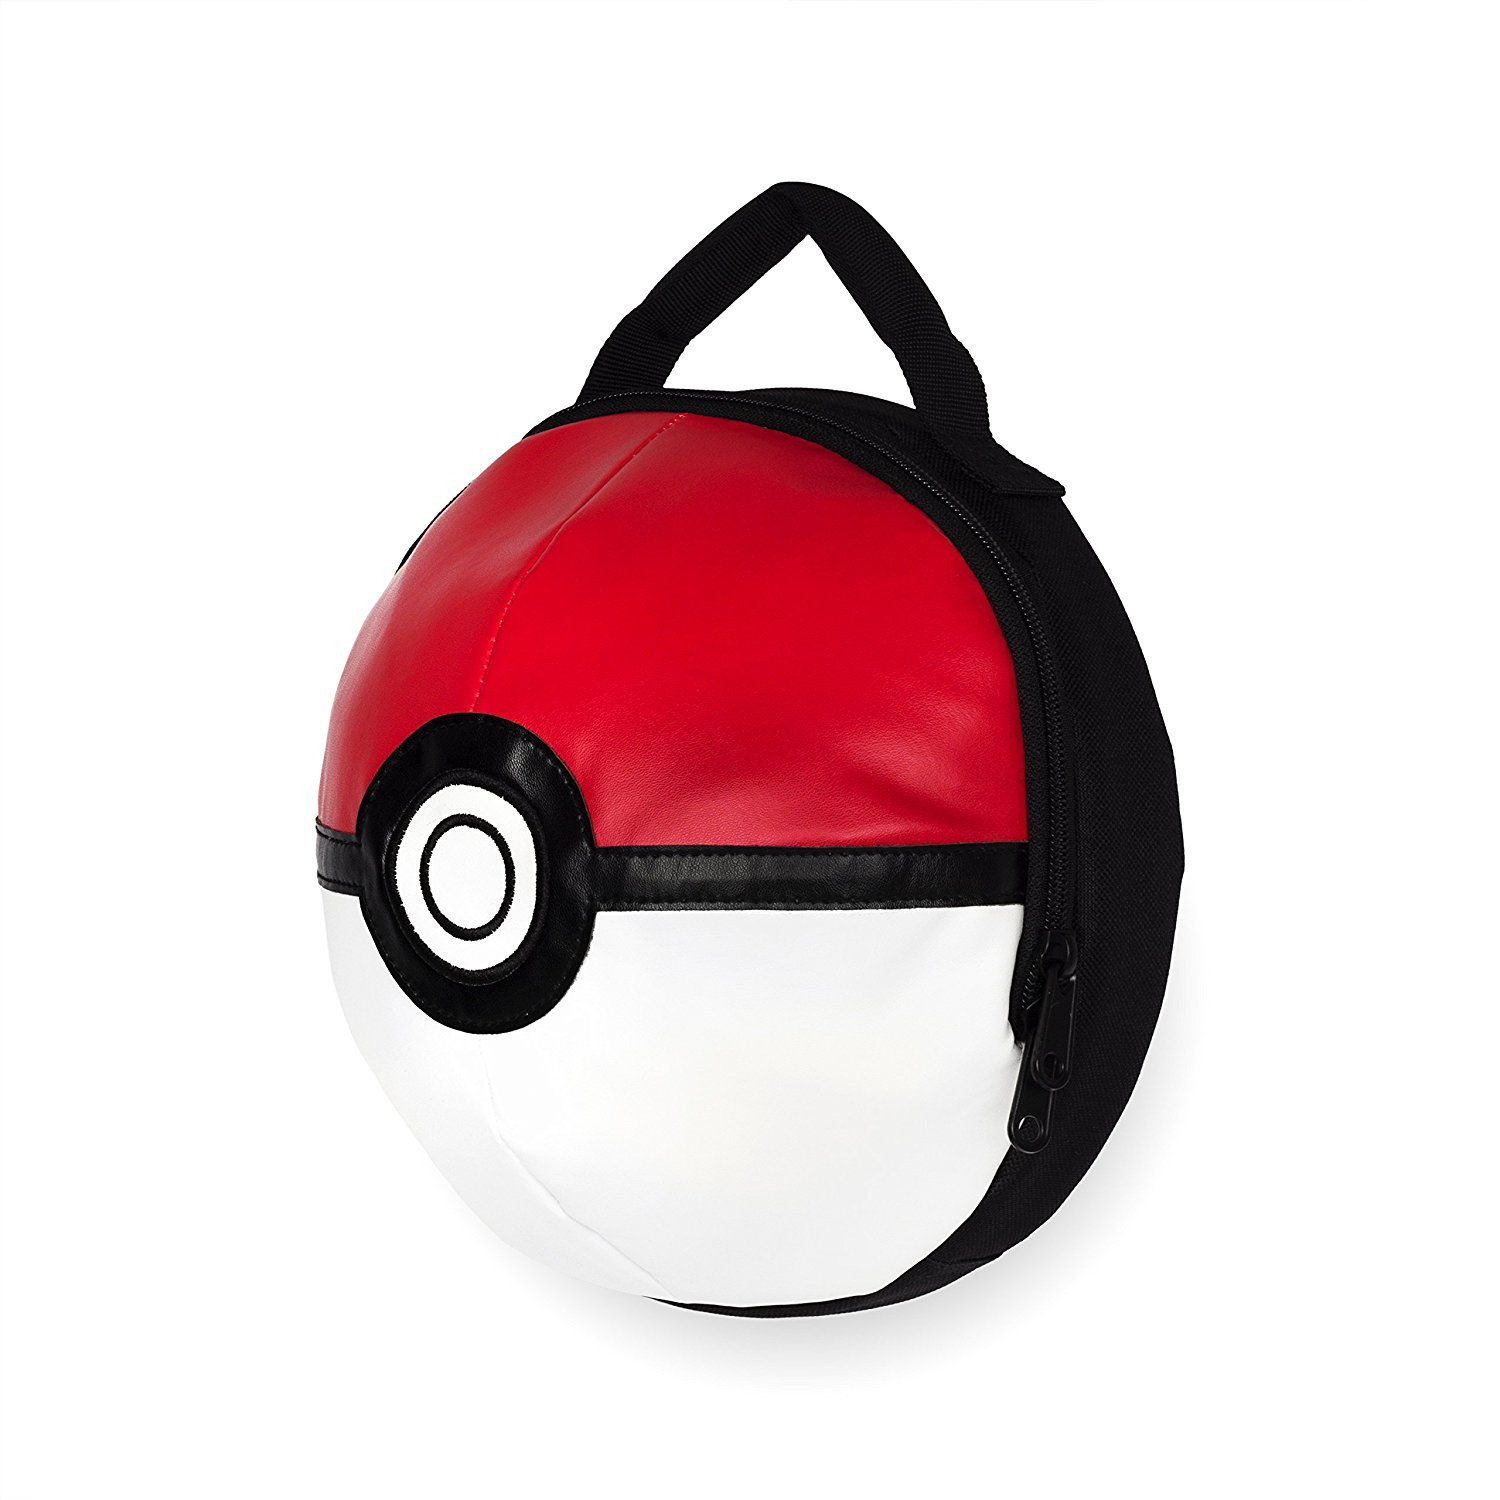 Nintendo Big Boys Pokemon Mini Pokeball bolsa para el almuerzo: Amazon.es: Hogar